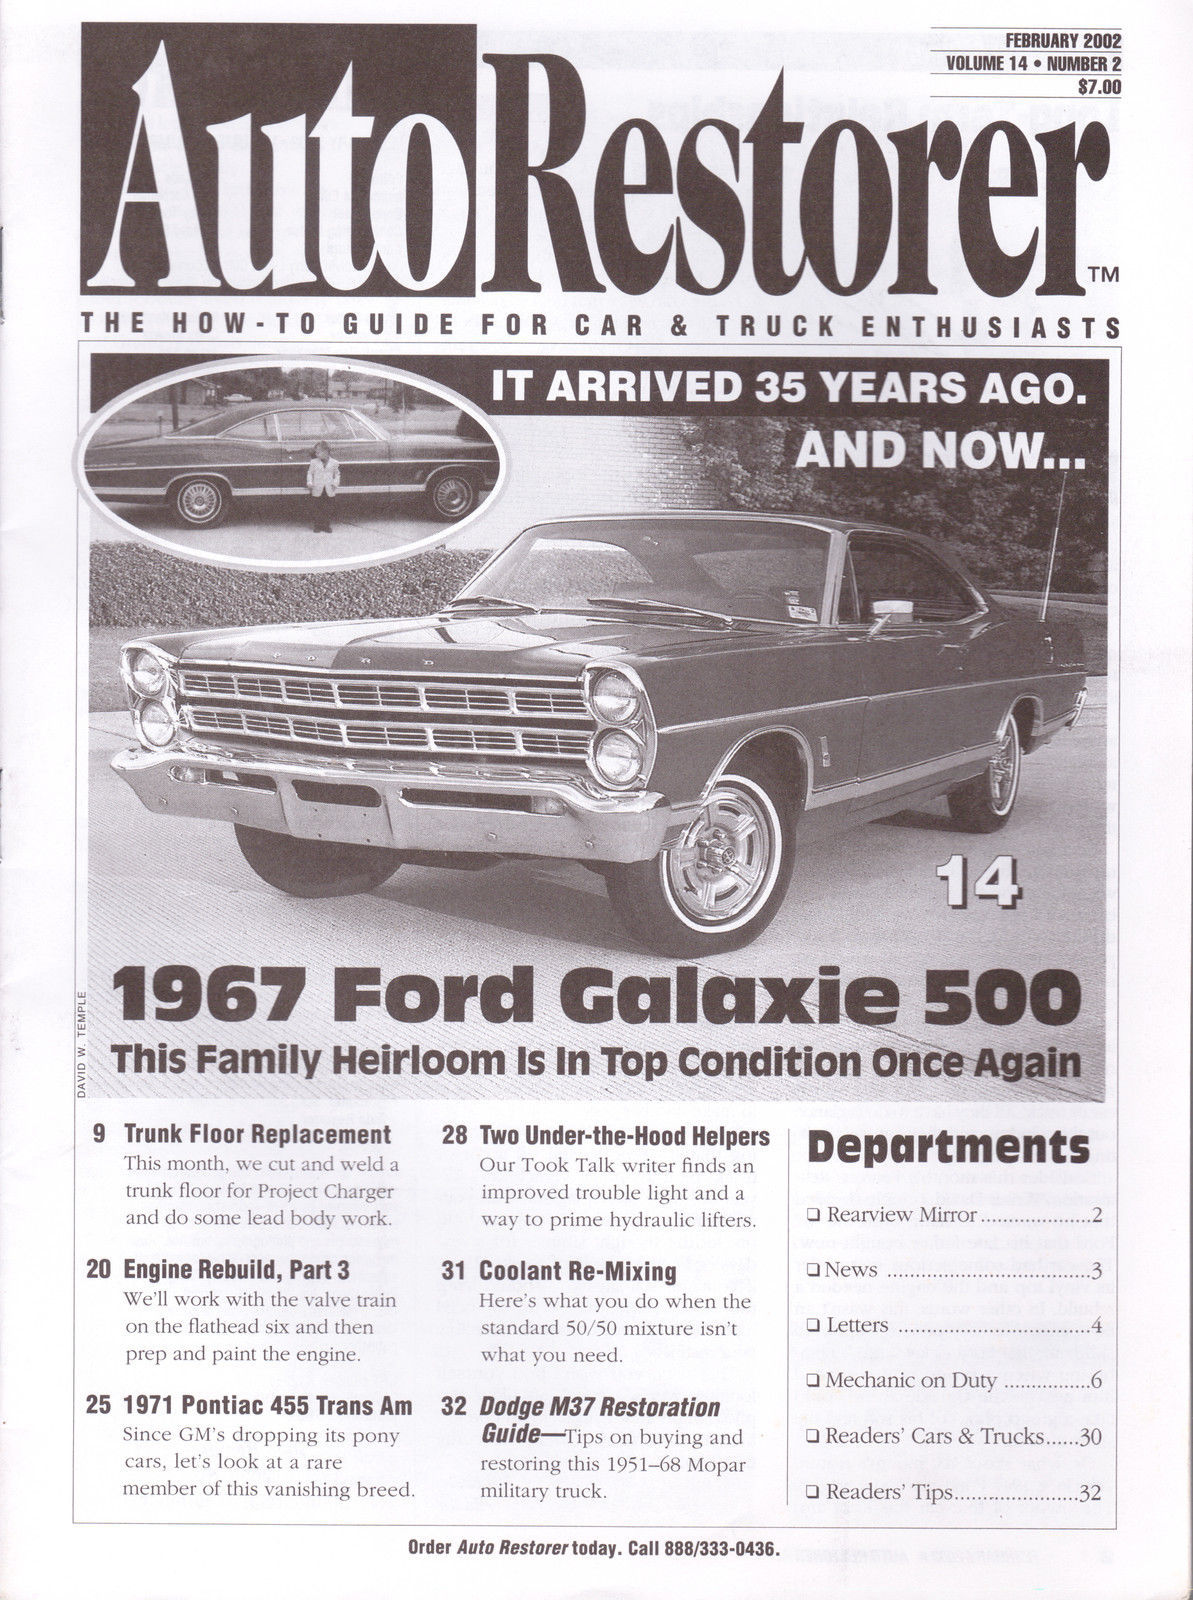 Primary image for Auto Restorer Magazine * Volume 14 * Number 2 * February 2002